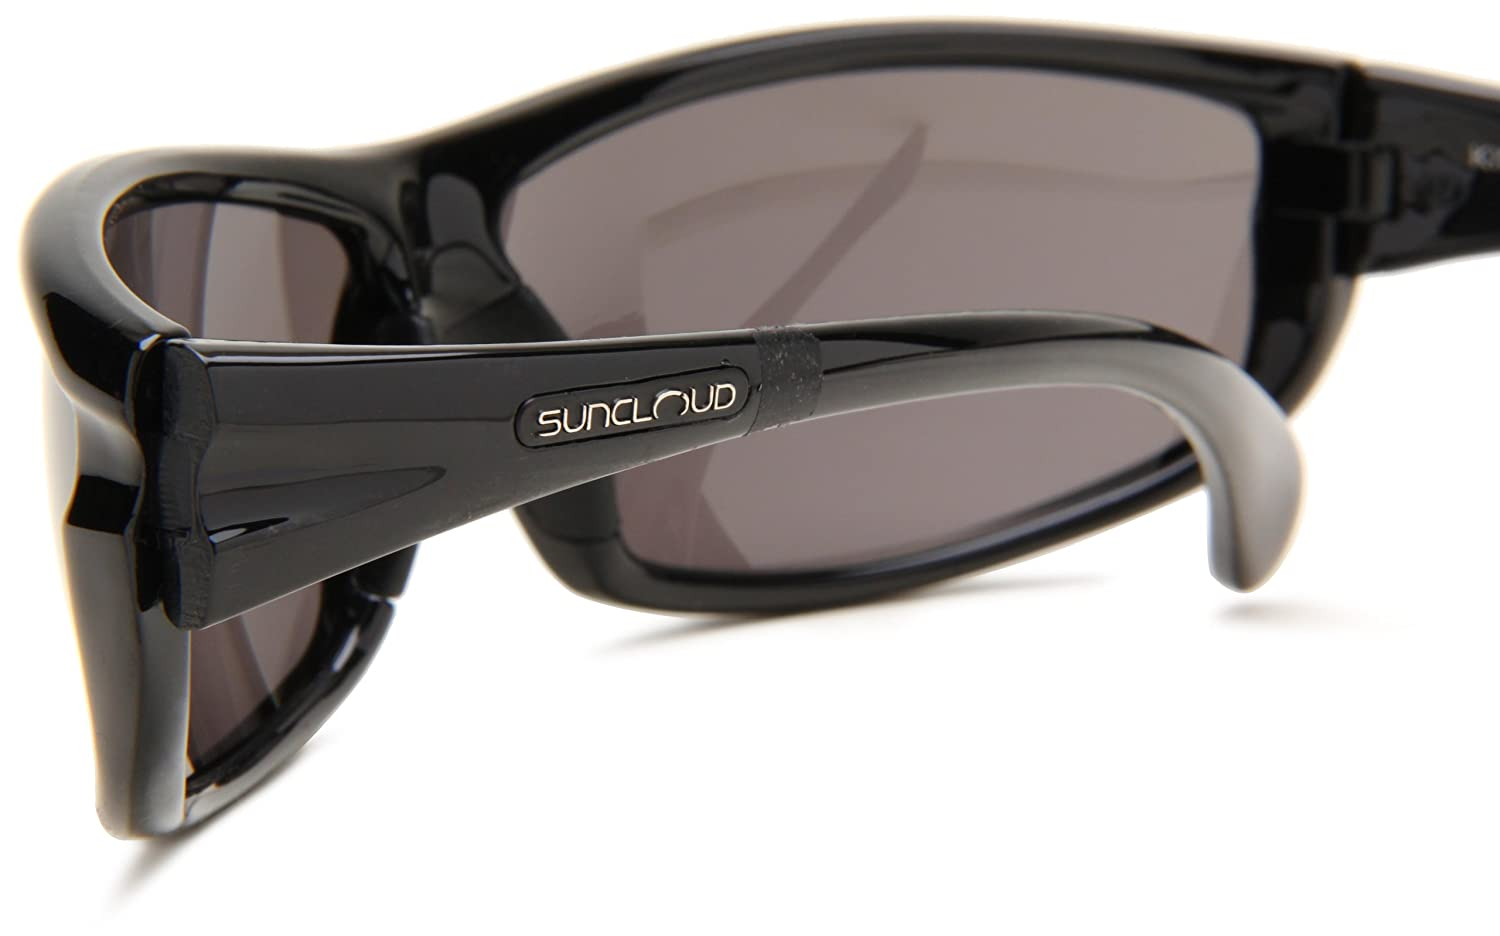 934df760c51 Suncloud Sentry Sunglasses Review – Southern California Weather Force